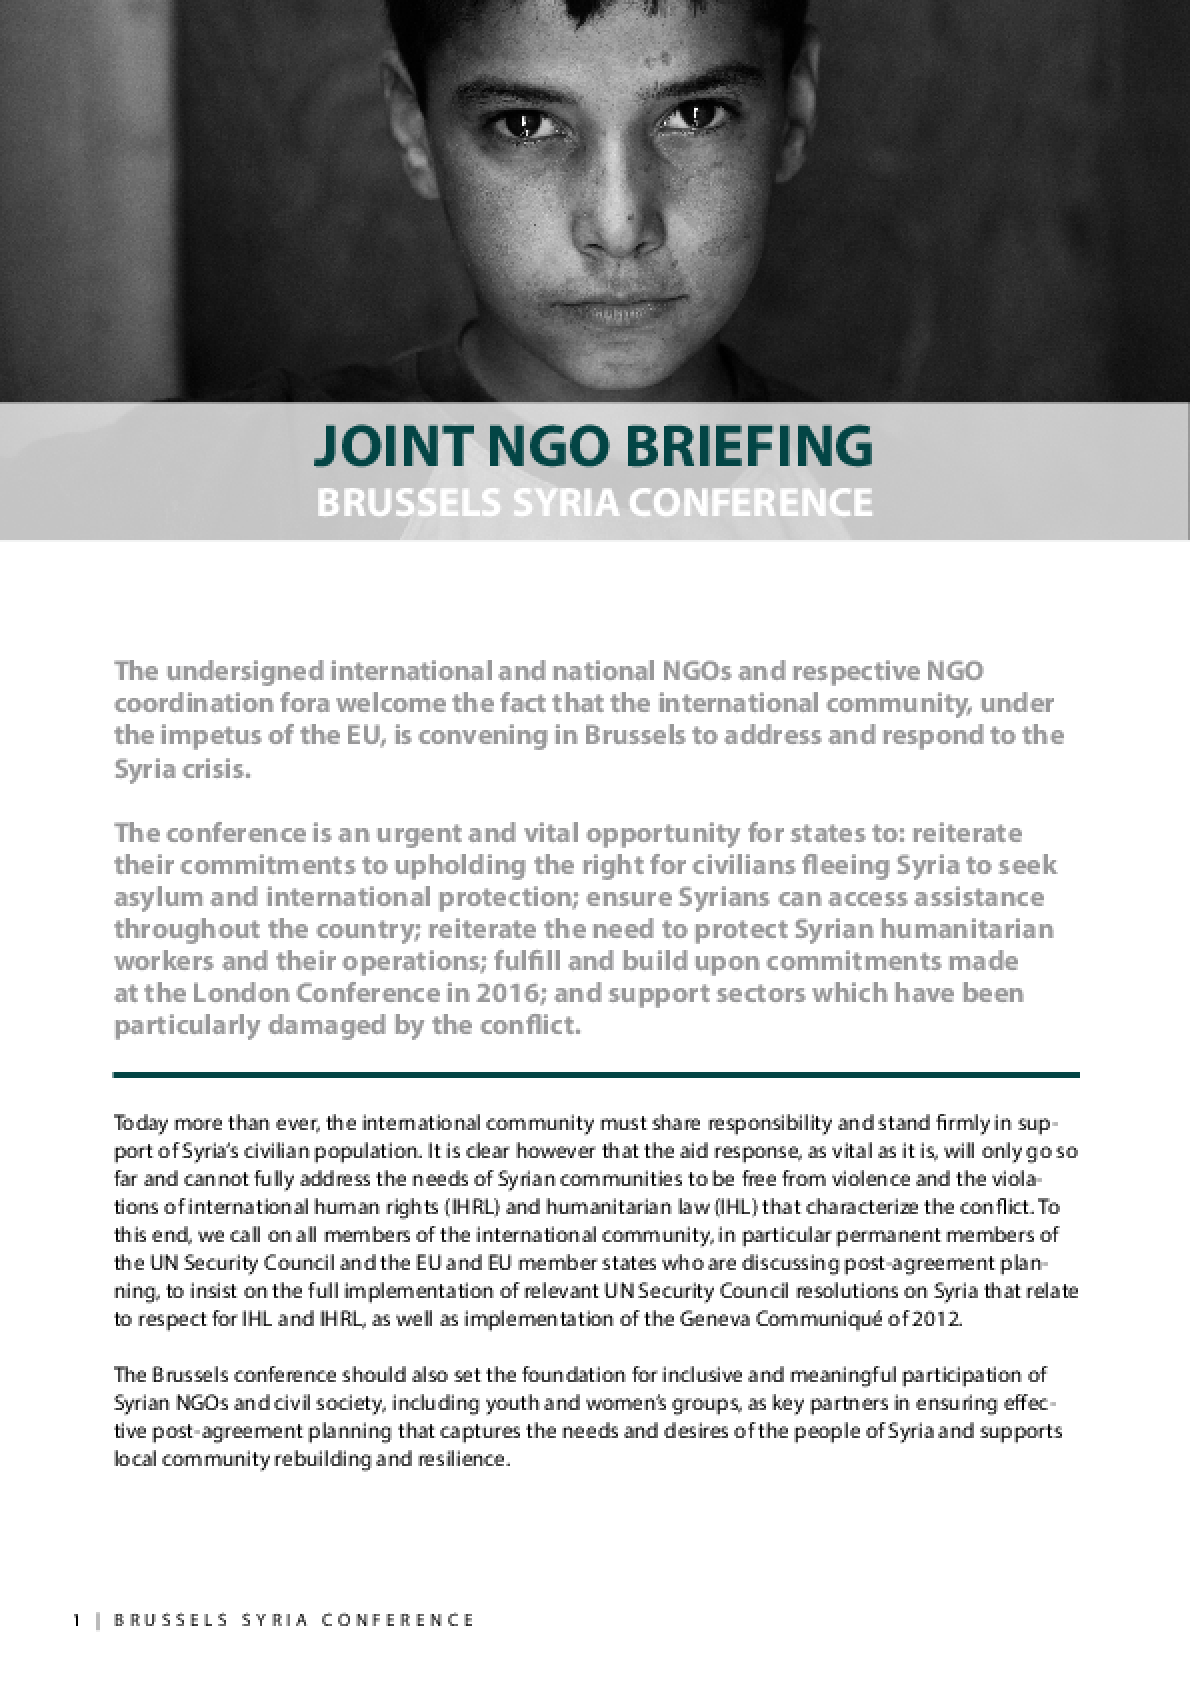 Joint NGO Briefing: Brussels Syria Conference